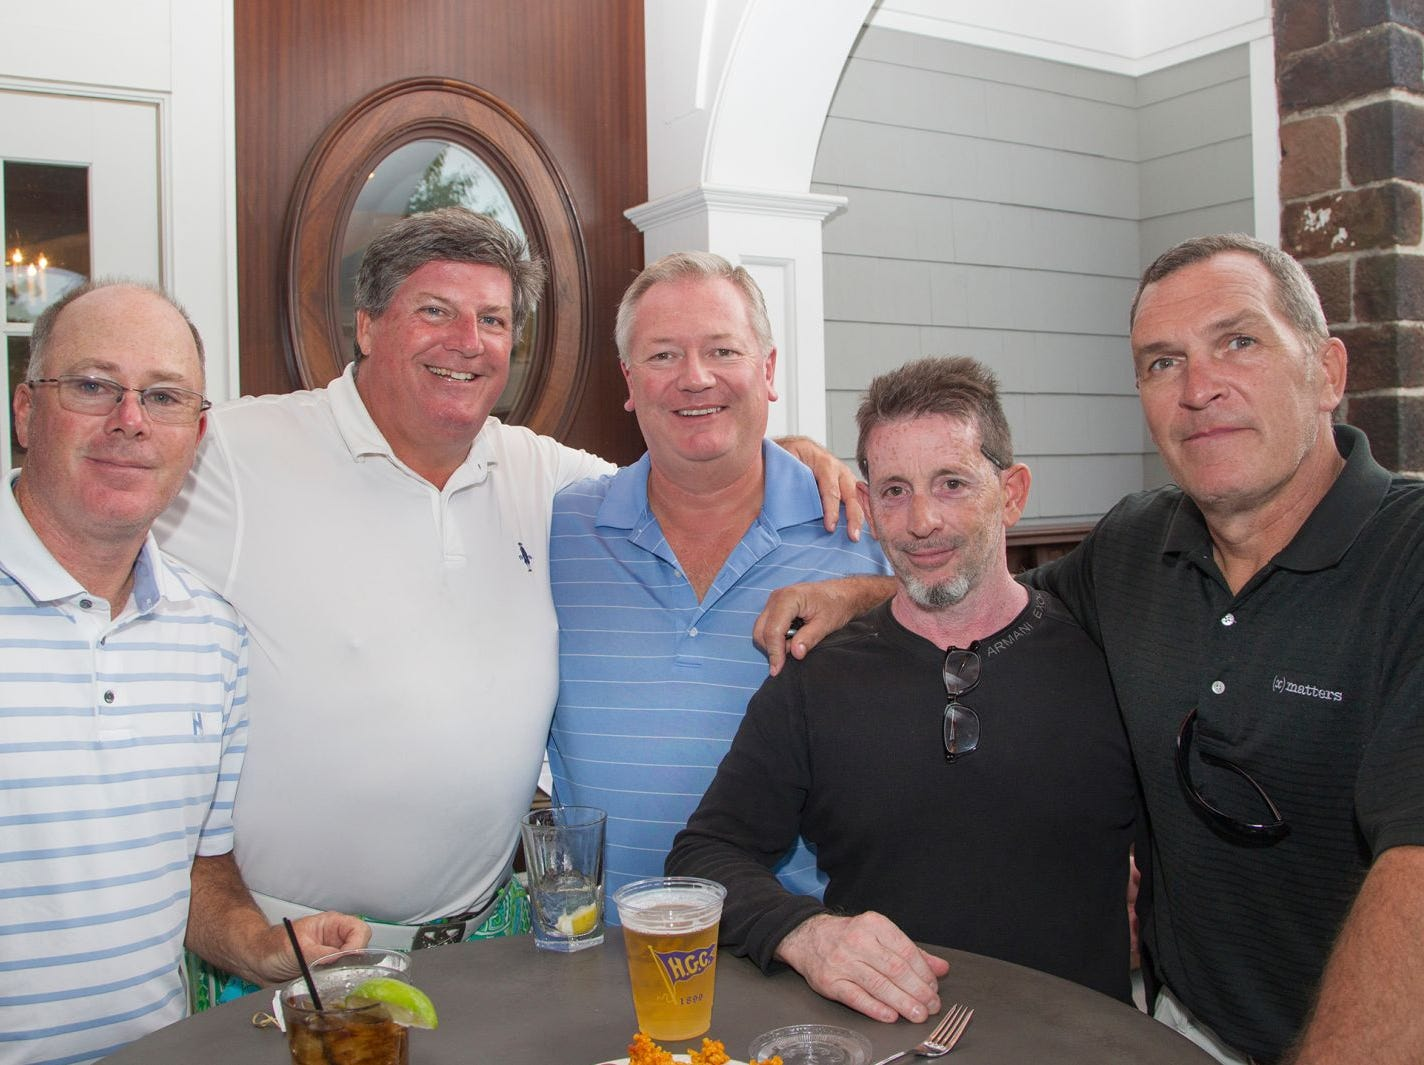 James Ferrca, Michael Sean McGeary, Simon Webb, Guy Coriano, Jimmy Monahan. Institute for Educational Achievement held its 23rd annual Golf Classic at Hackensack Golf Club in Oradell. 10/01/2018